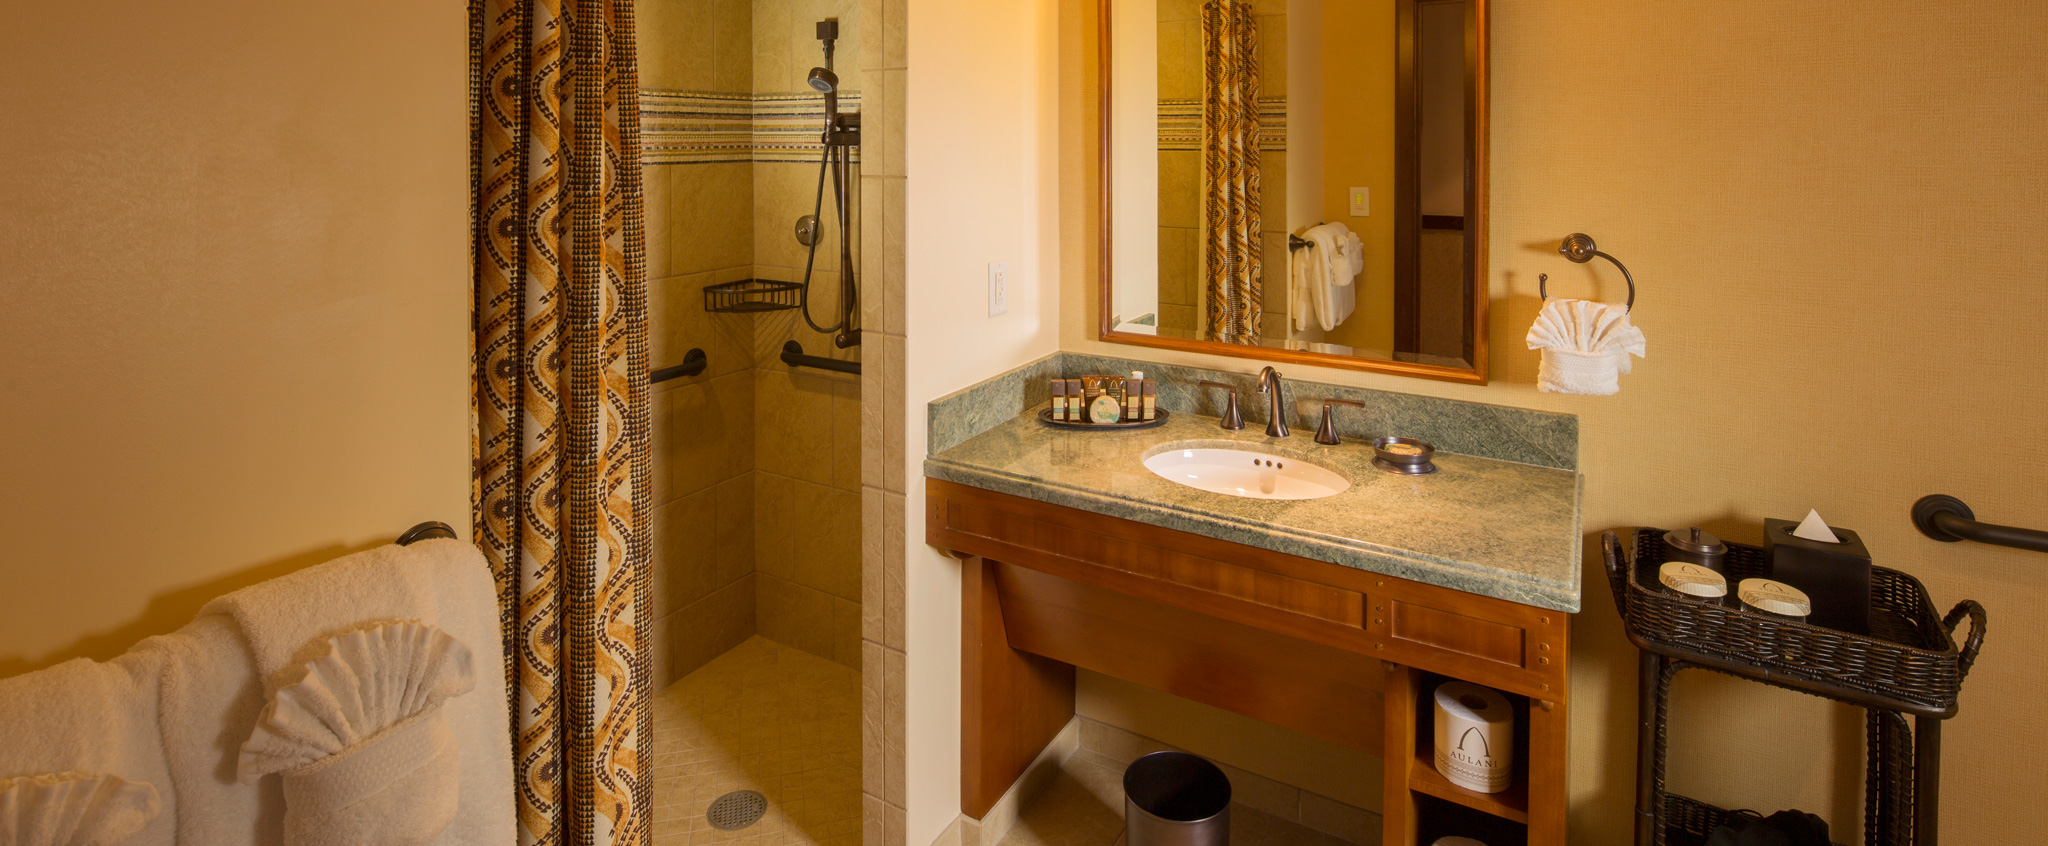 full bathrooms. A Bathroom In 2-Bedroom Suite Has Sink, Tiled Shower With Curtain Full Bathrooms E